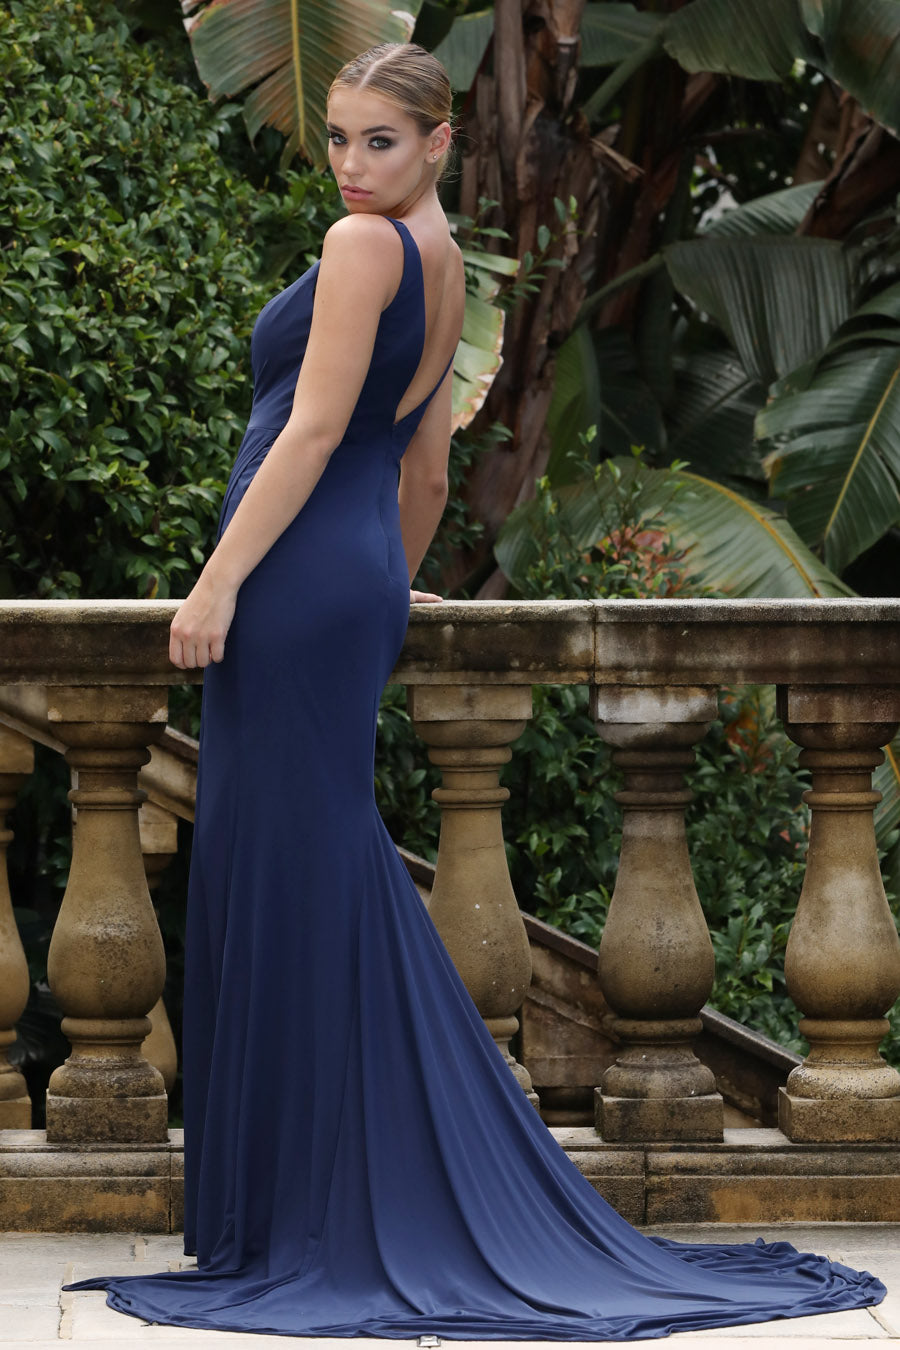 TINA HOLLY COUTURE DESIGNER BA808 NAVY DRAPE FRONT MERMAID FORMAL DRESS